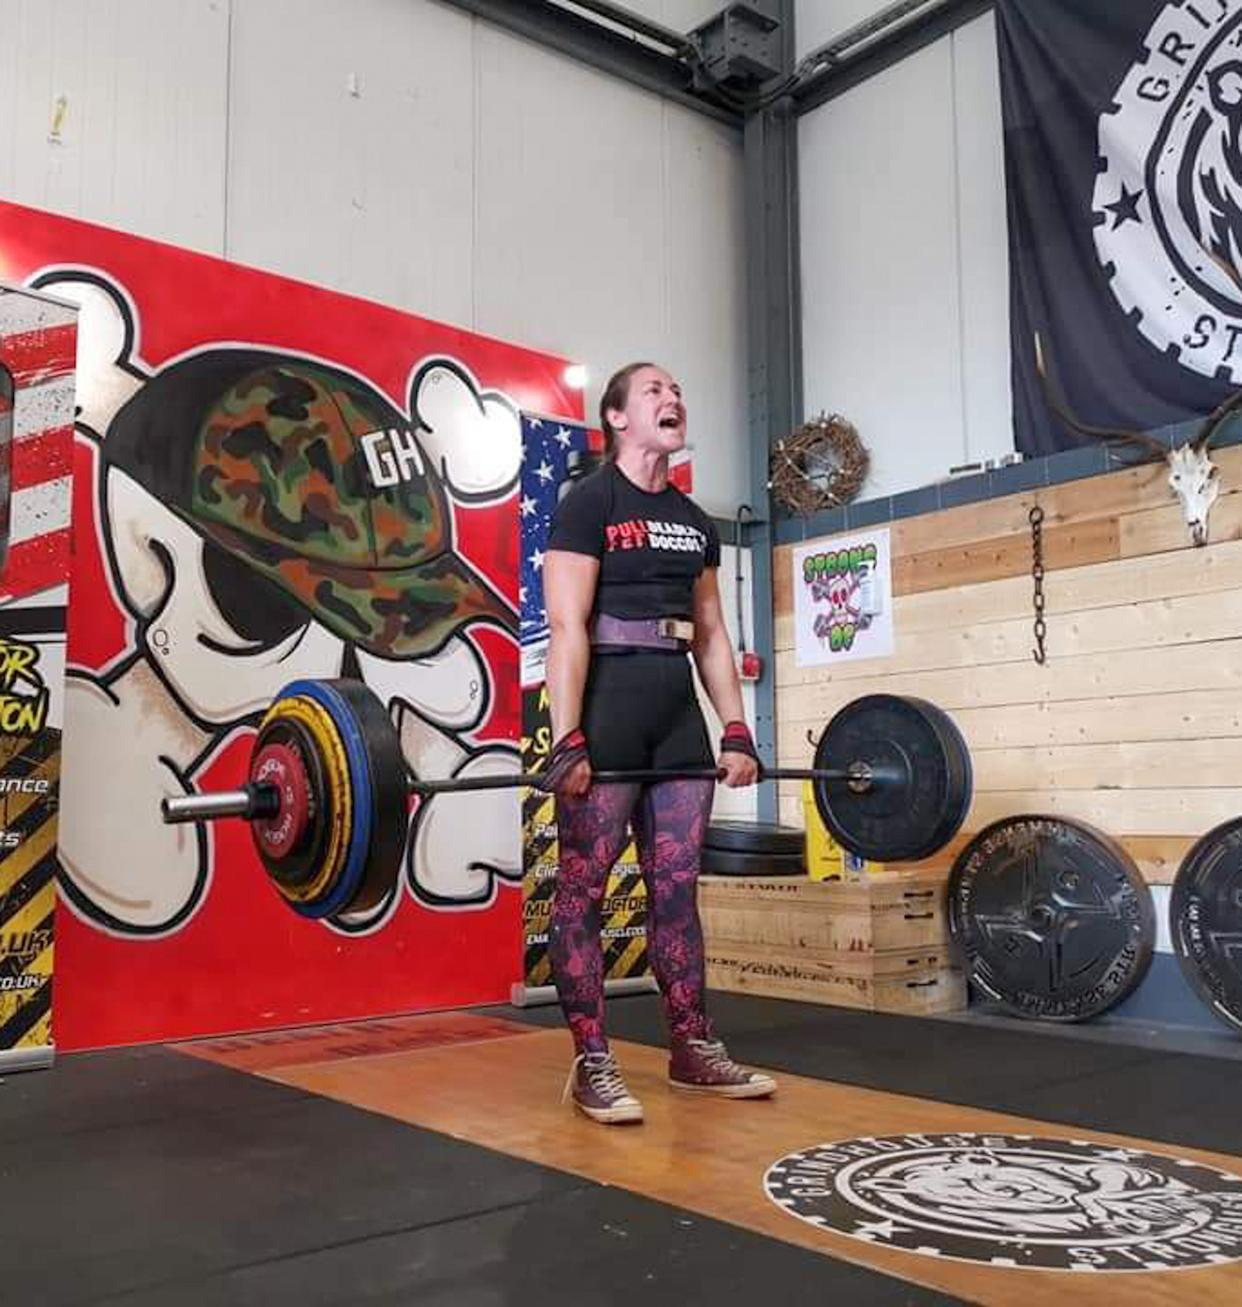 Maria Krzesinska, 40, from Dudley, works at Worcester road McDonald's in Kidderminster by day but has qualified for the Official Strongman Games World's Strongest Woman competition.